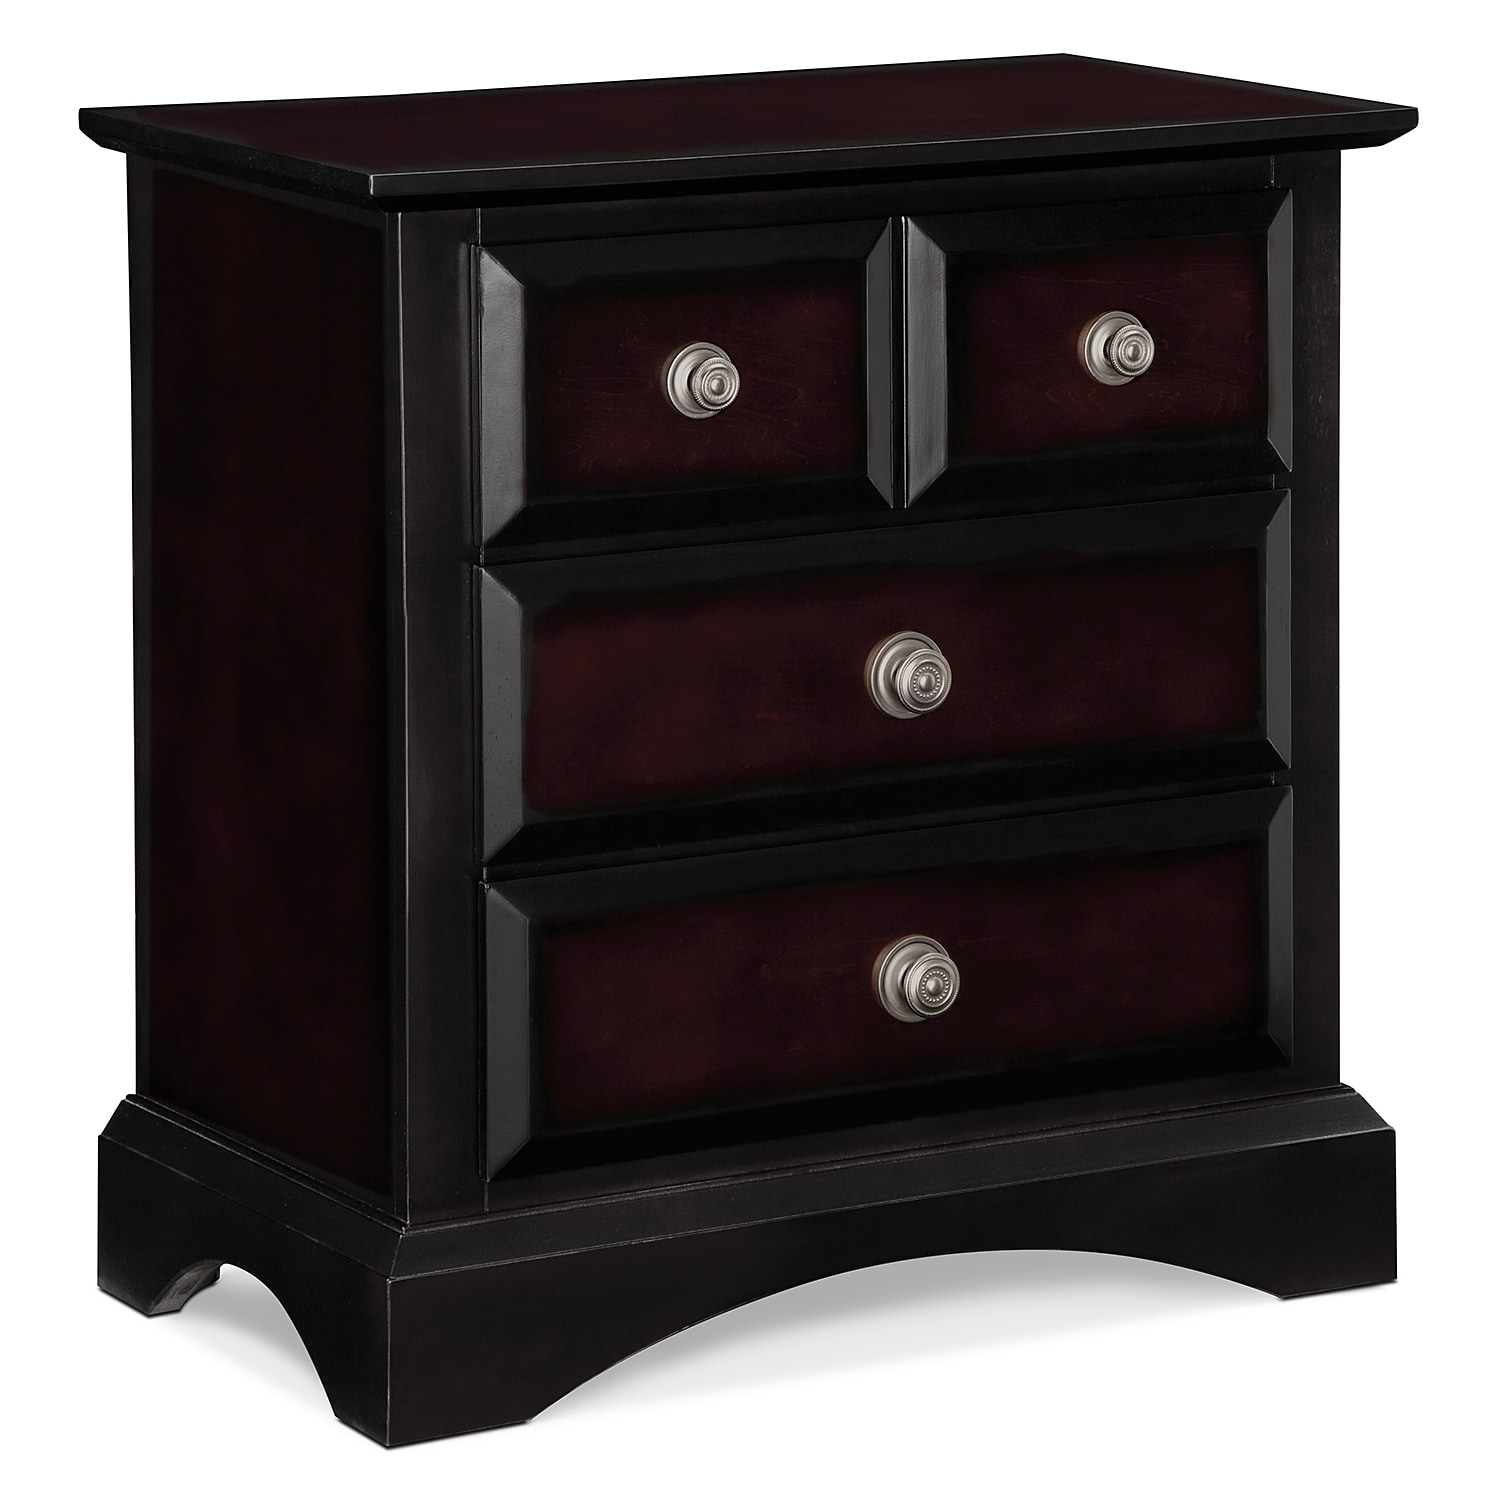 Bedroom Furniture - Landon Nightstand